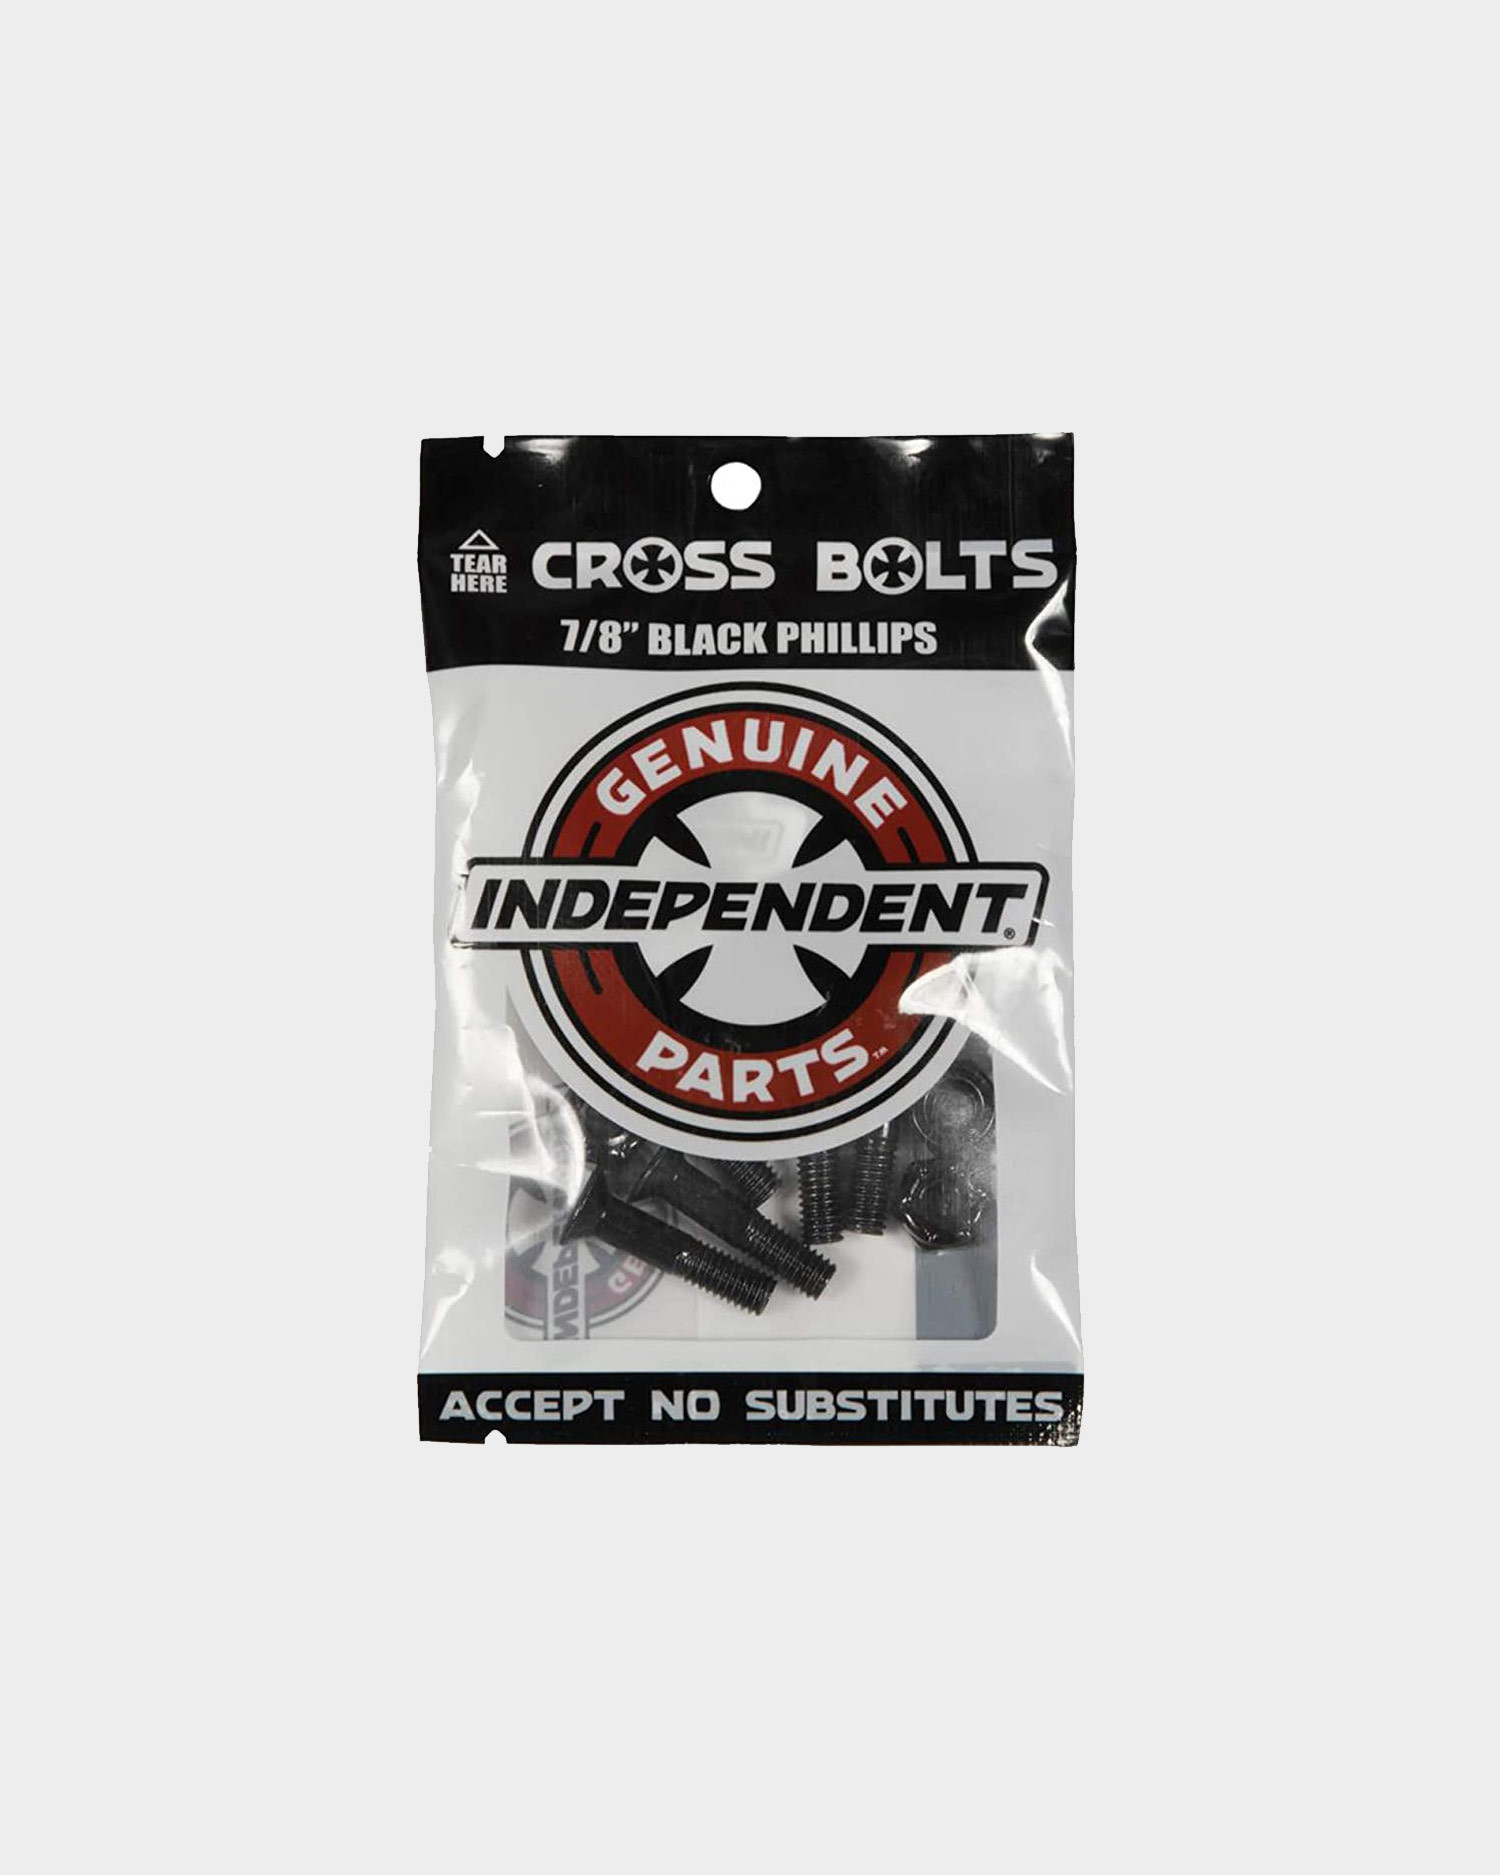 Independent Cross Philips 7/8 inch Bolts Black